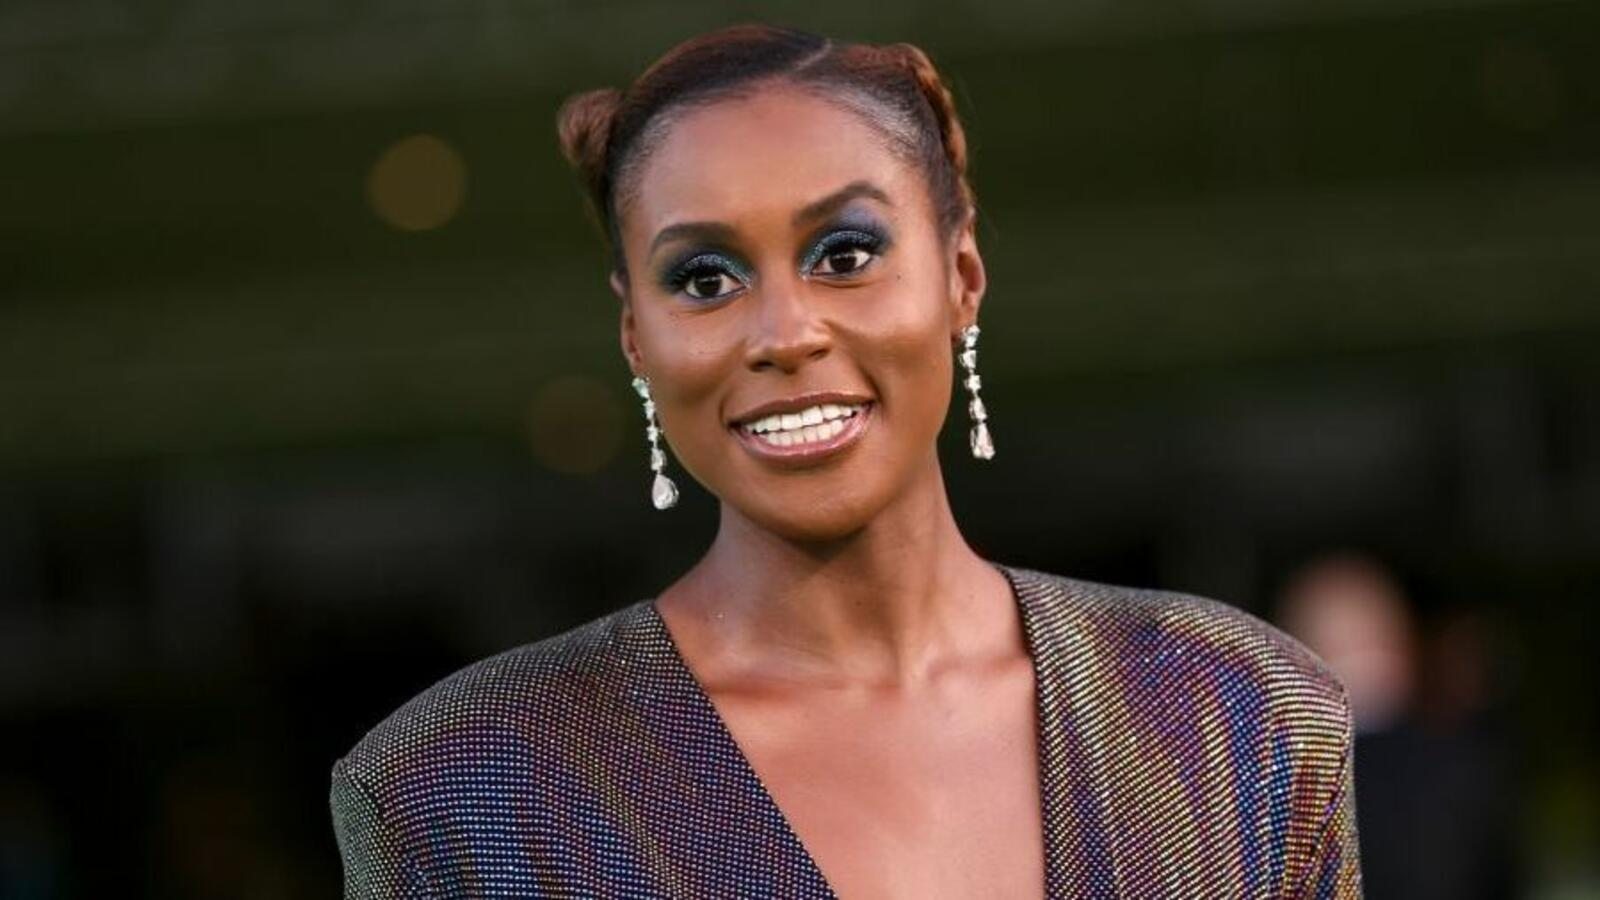 Issa Rae Opens Up About Marriage During The Pandemic, Oversharing & More